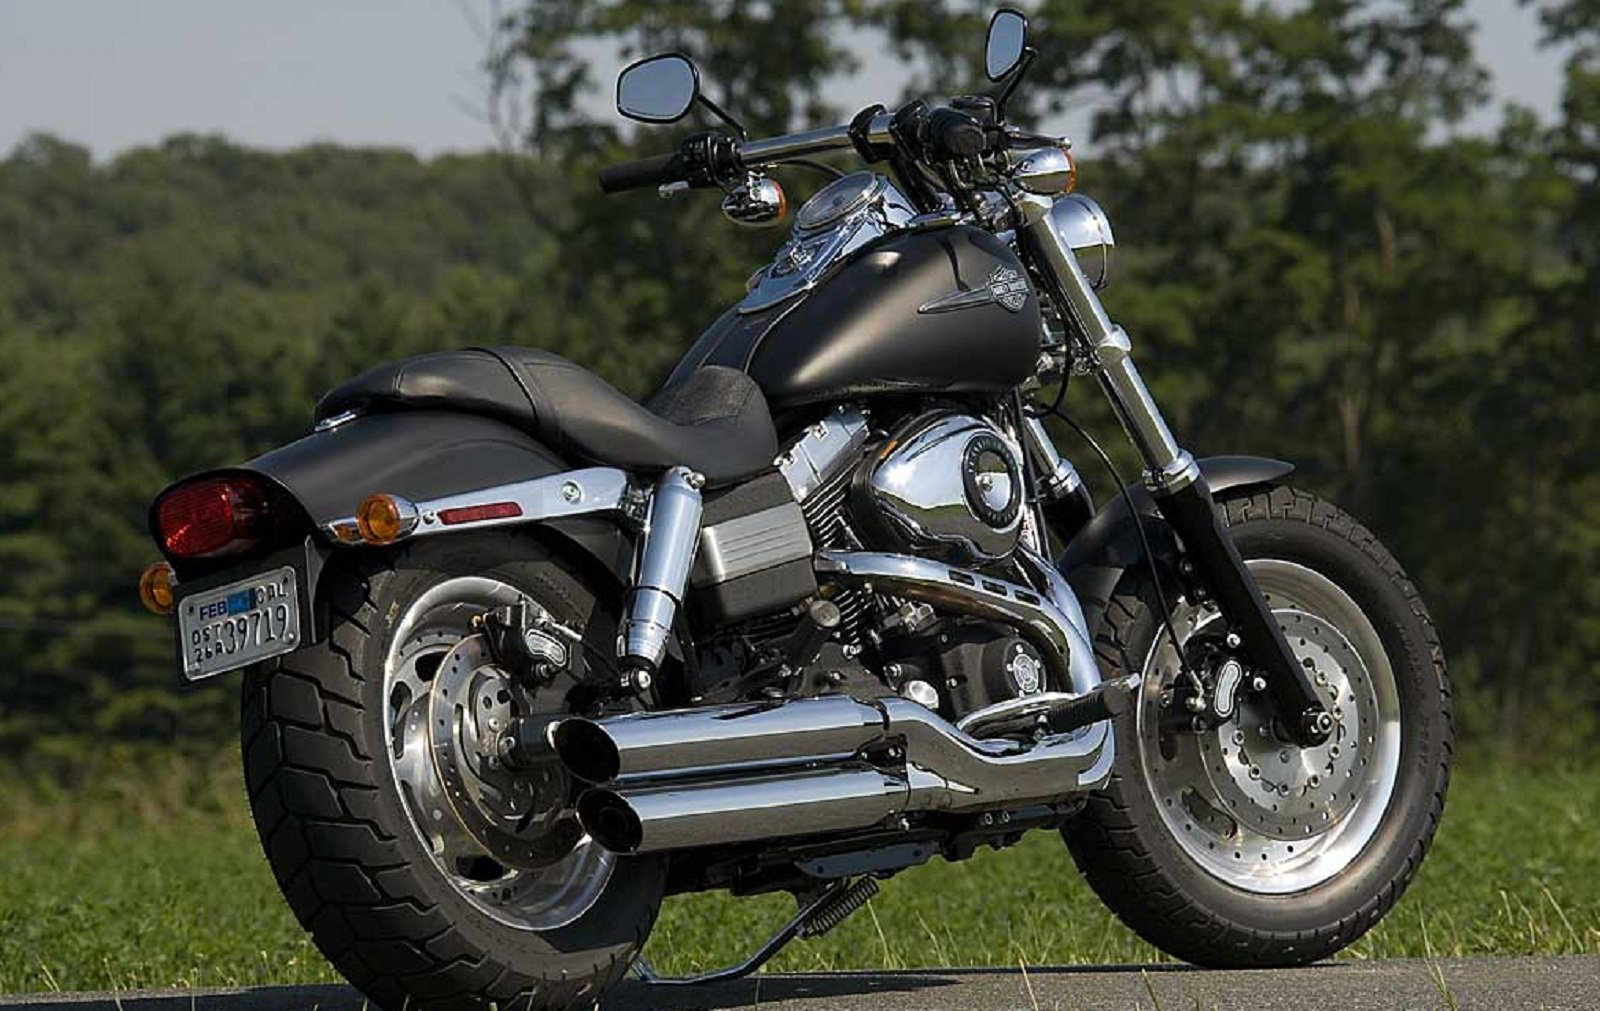 2012 Harley-Davidson Dyna FXDF Fat Bob picture - doc432544